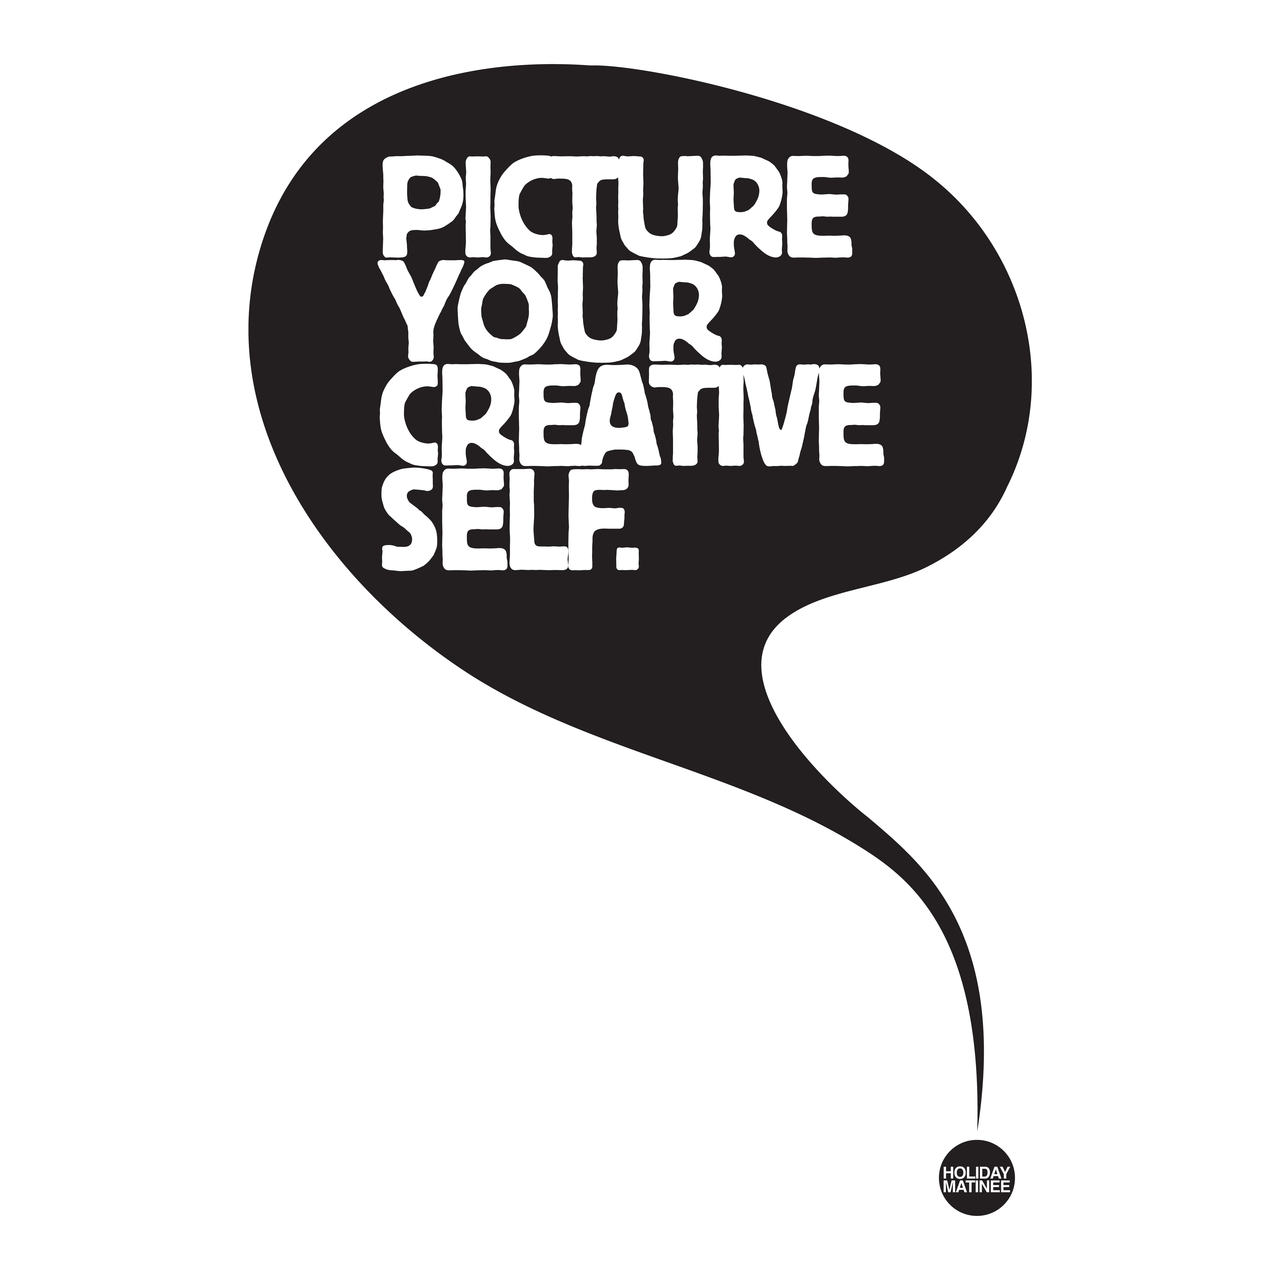 Picture Your Creative Self